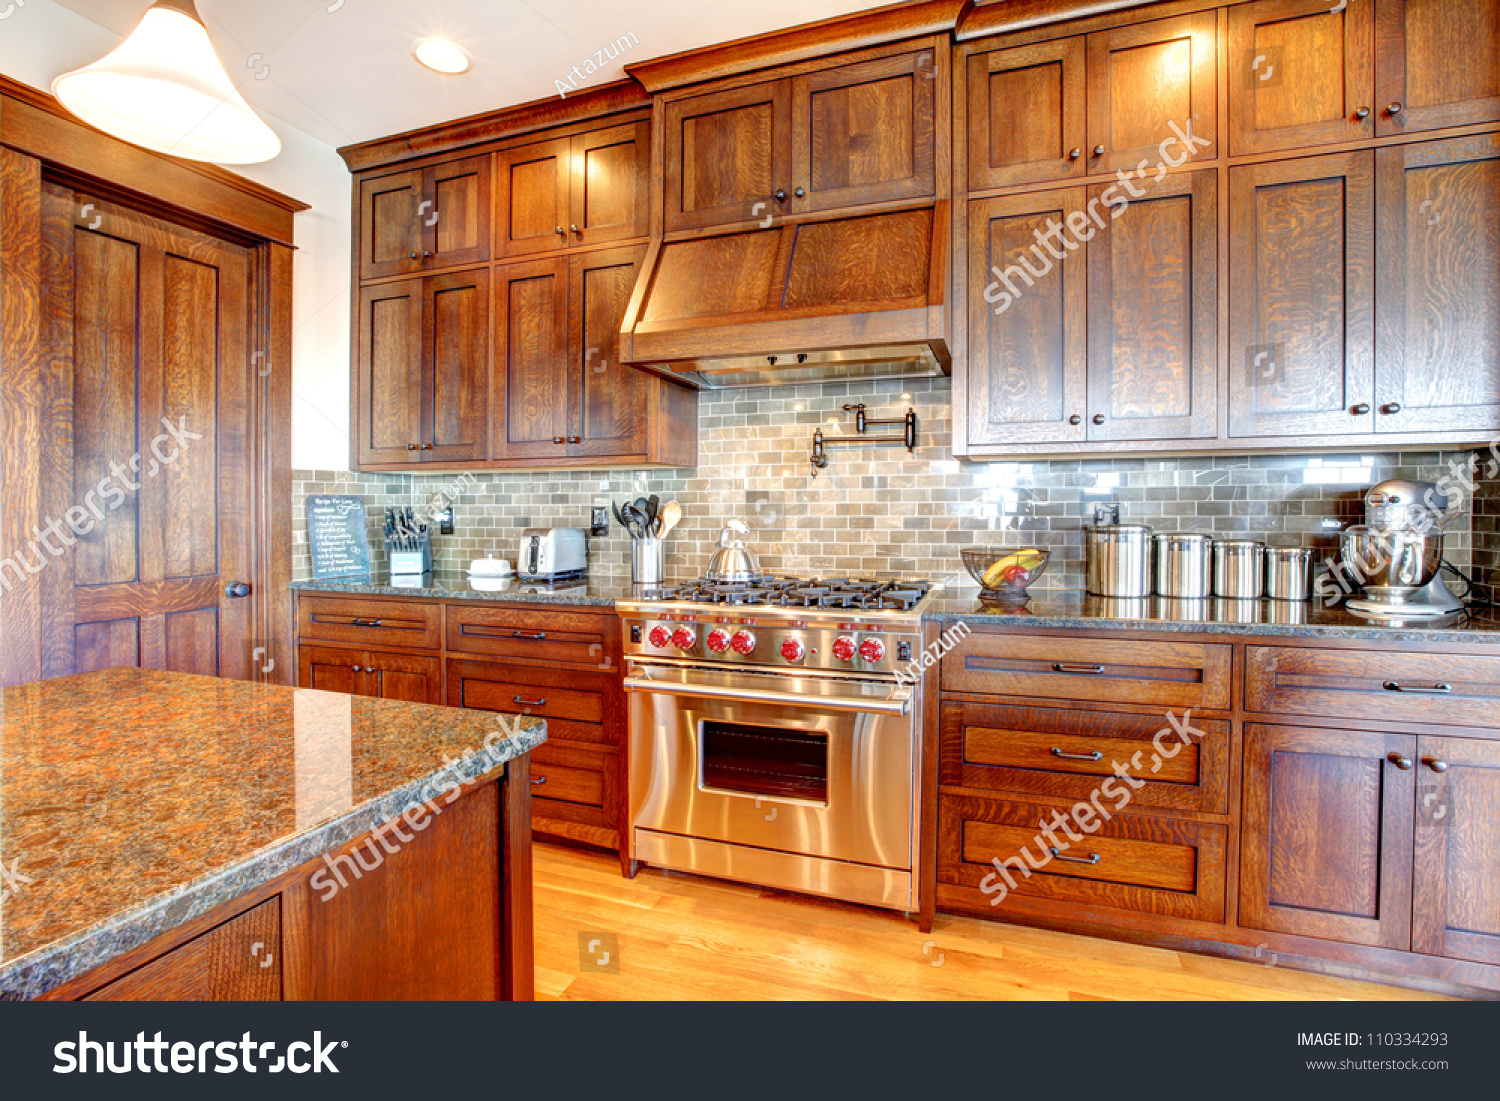 Kitchen And Granite Luxury Pine Wood Beautiful Custom Kitchen Stock Photo 110334293